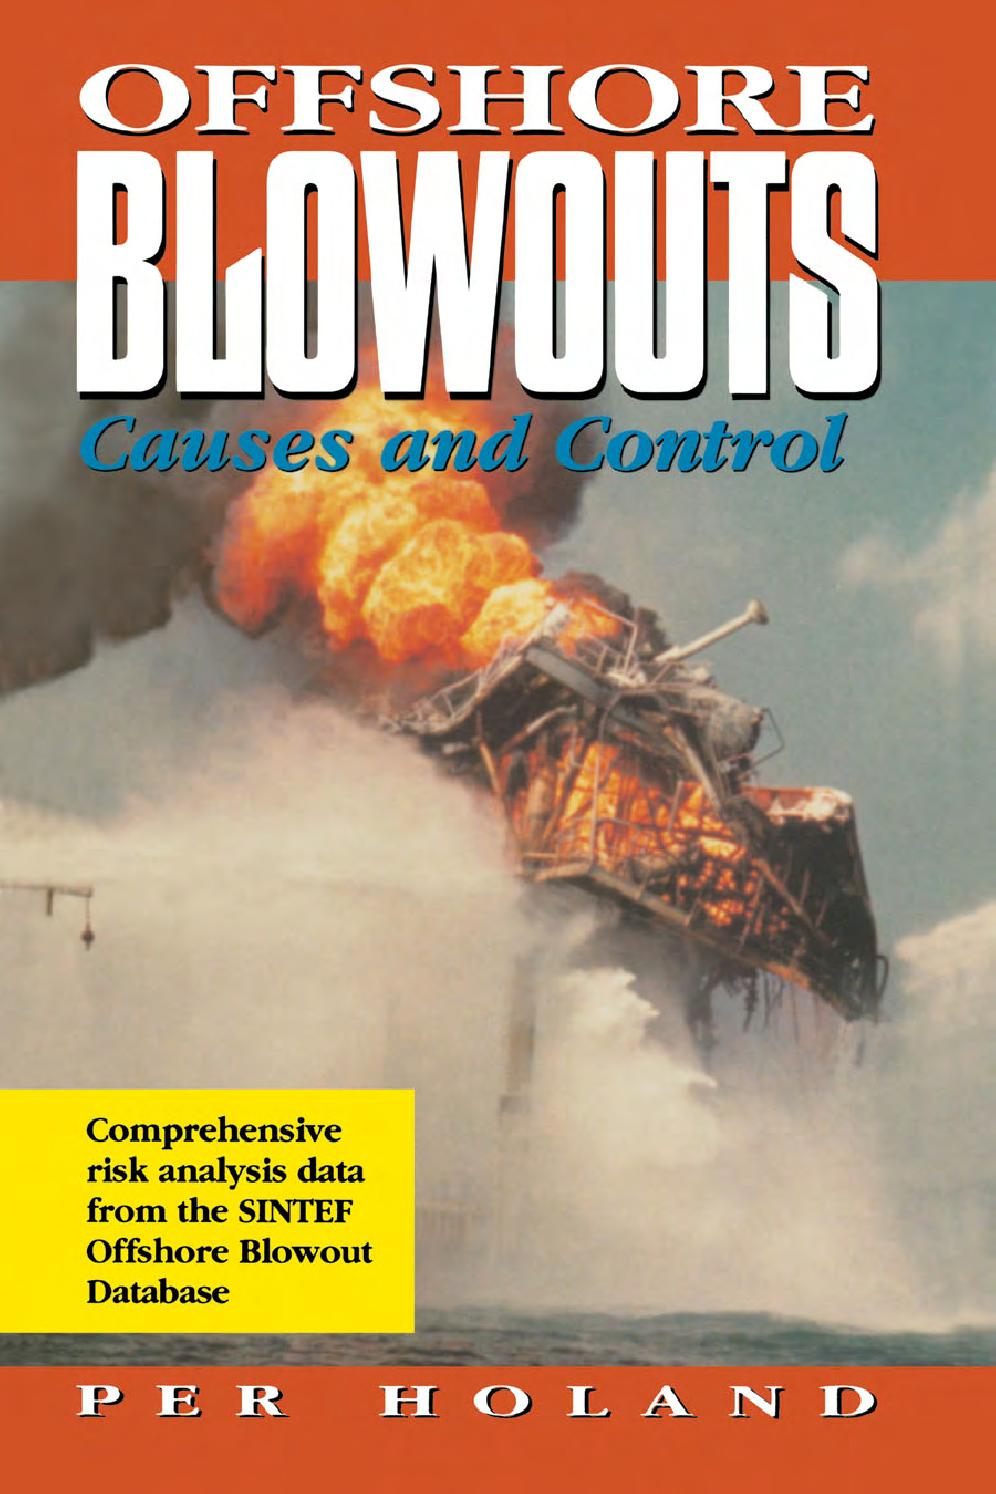 Offshore Blowouts Causes And Control (1997) By Juan Carlos with Offshore Rotation Calendar